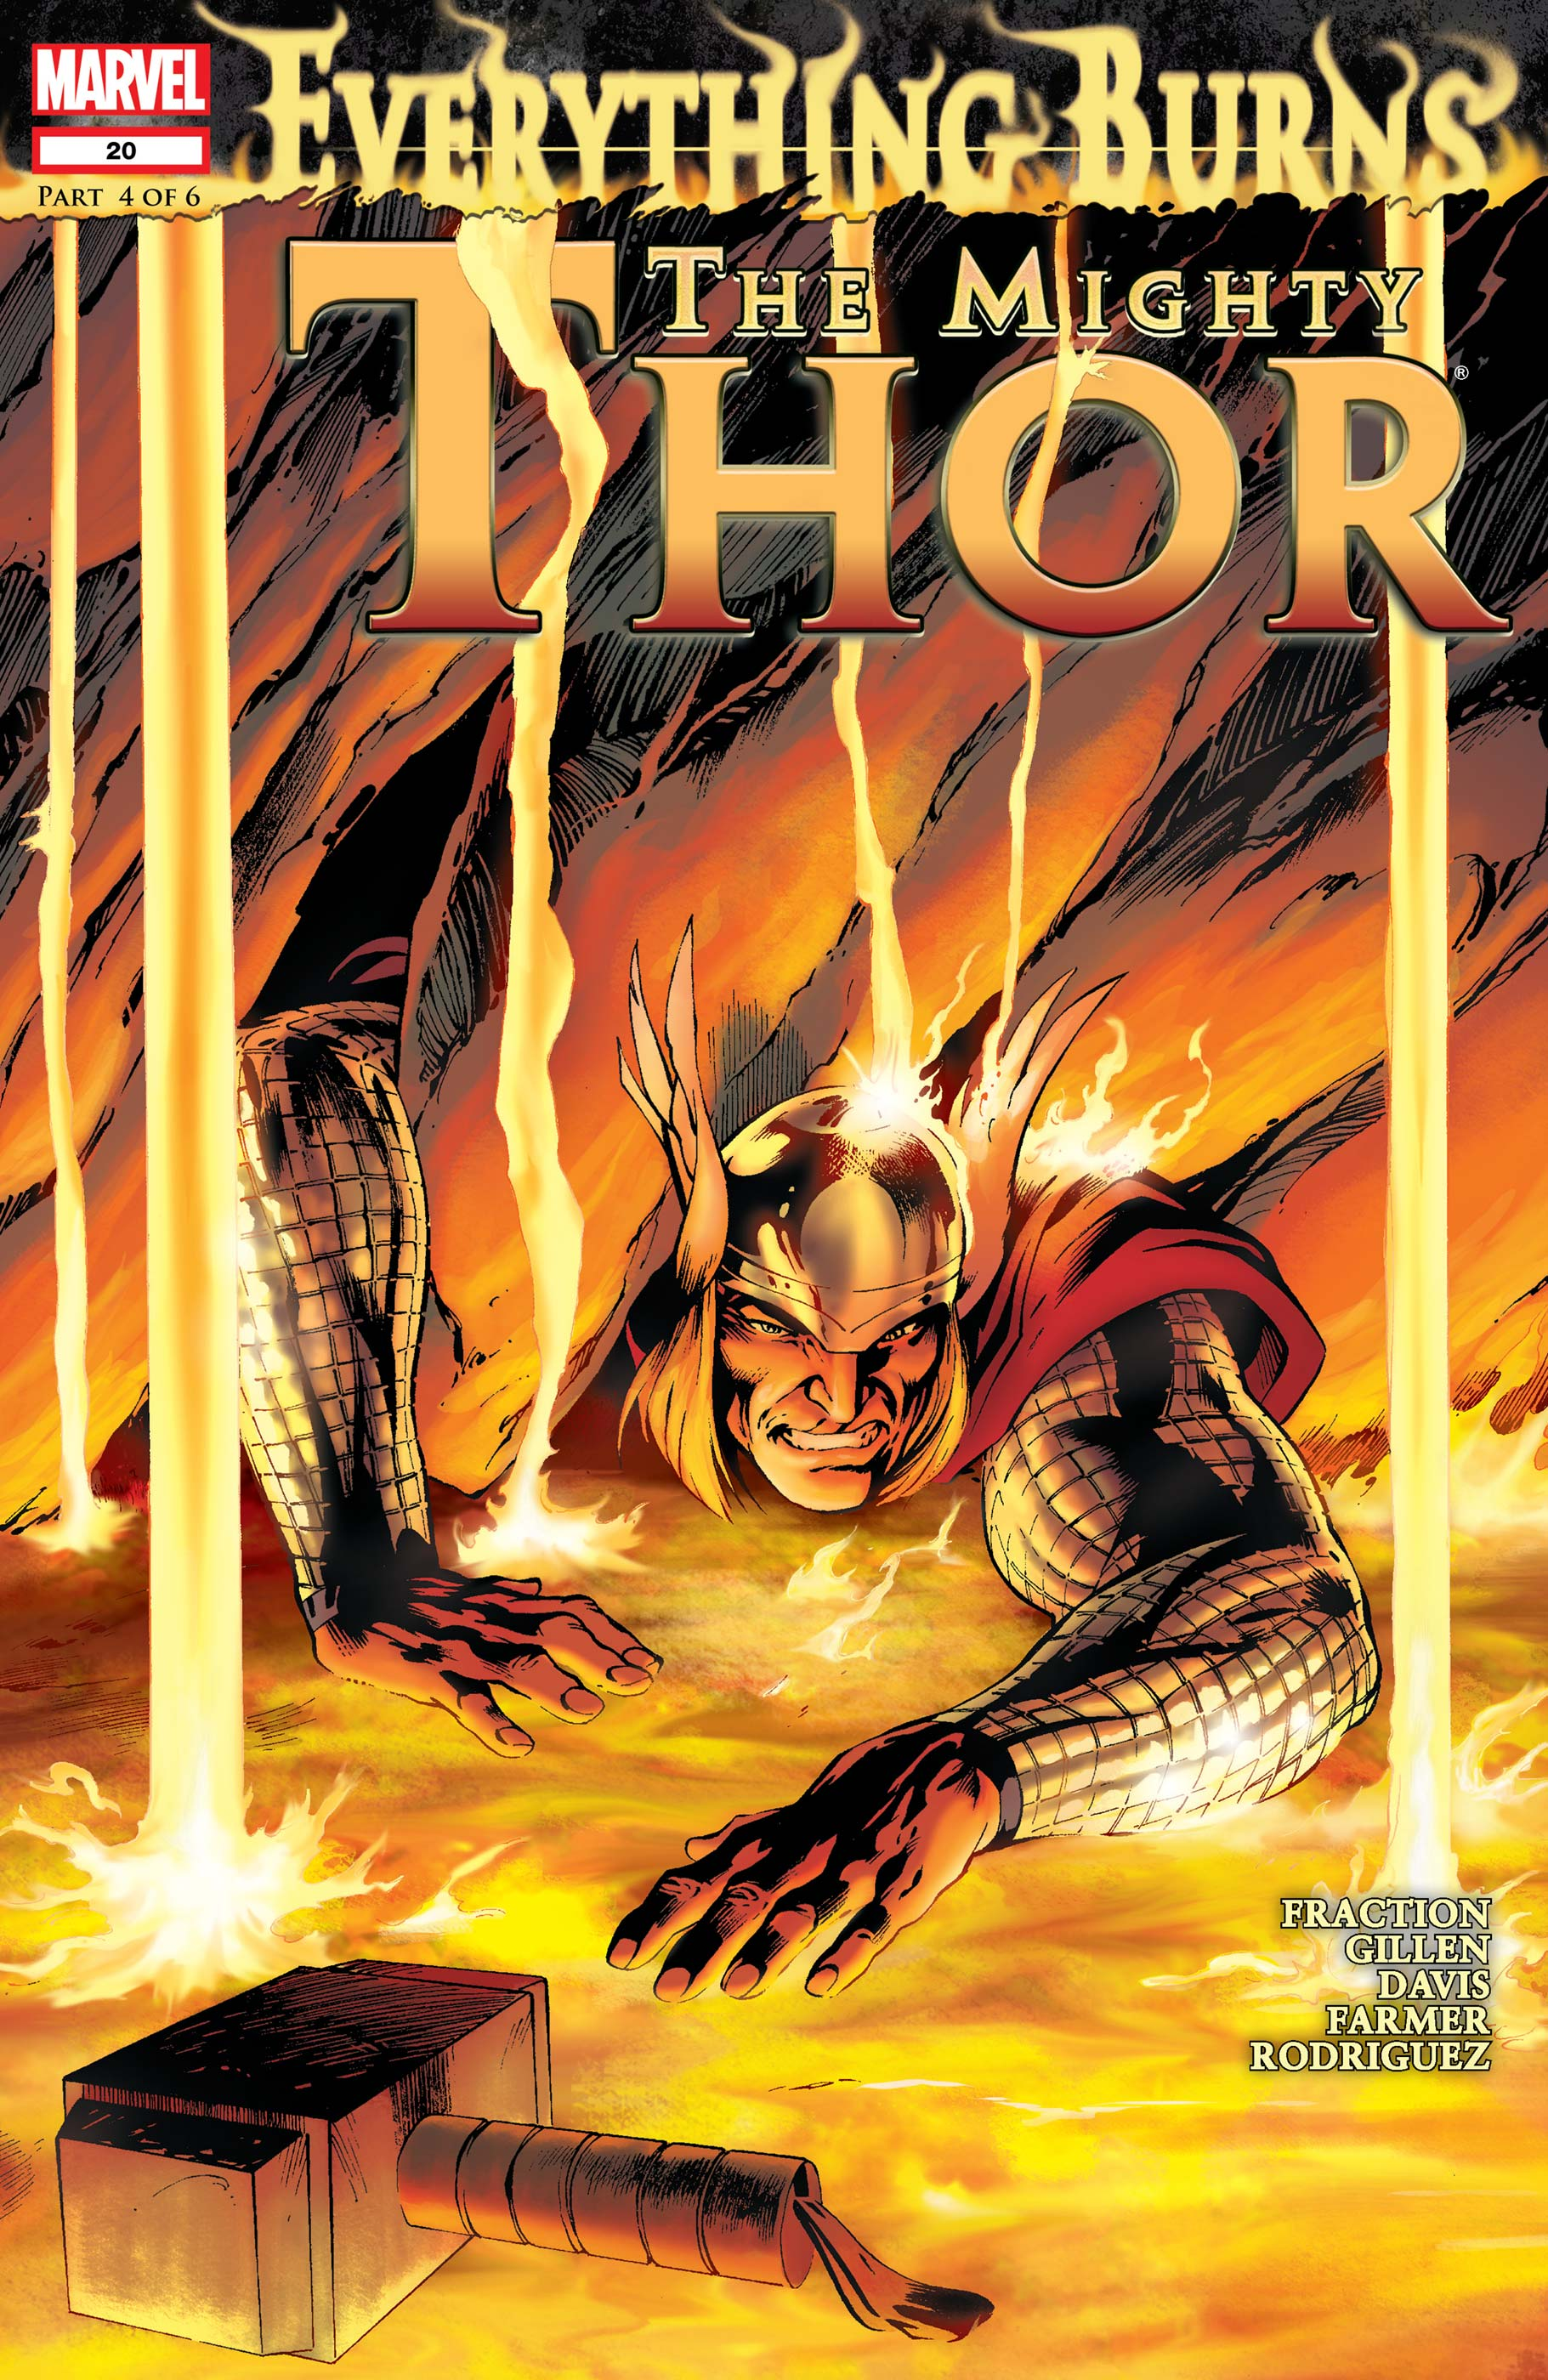 The Mighty Thor (2011) #20